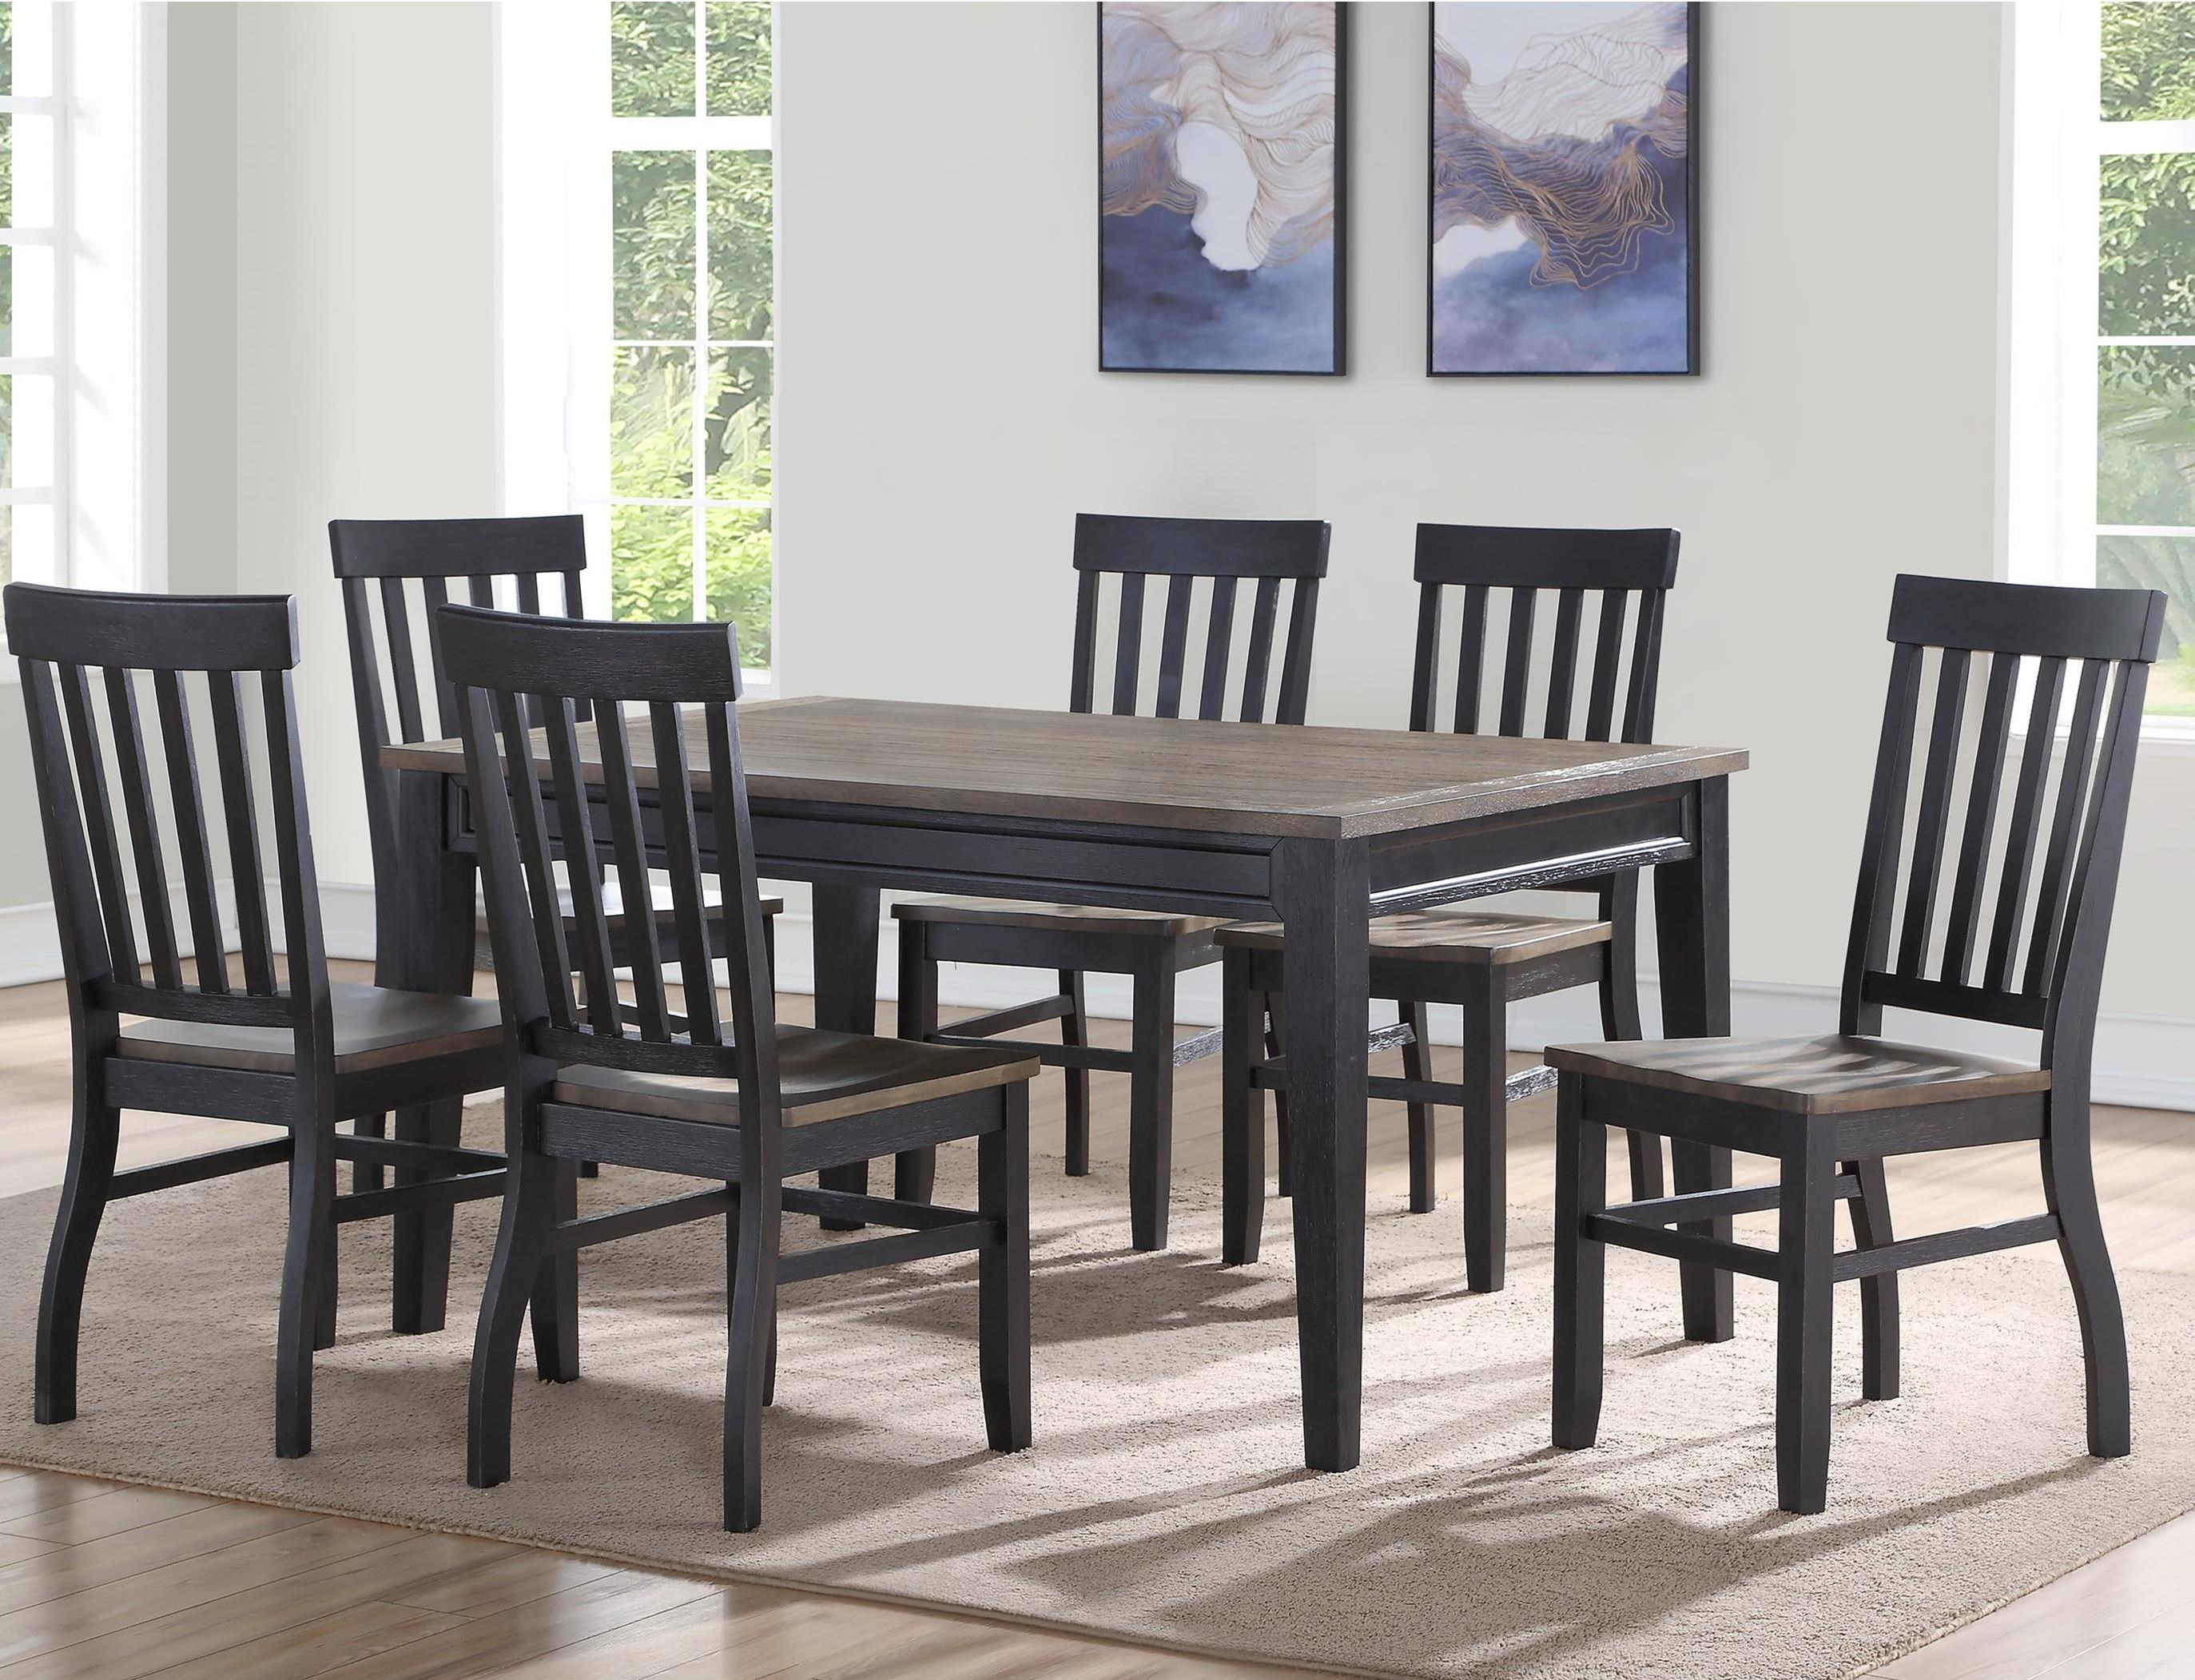 Wayside Dining Room Furniture: Steve Silver Raven Casual Seven Piece Dining Set